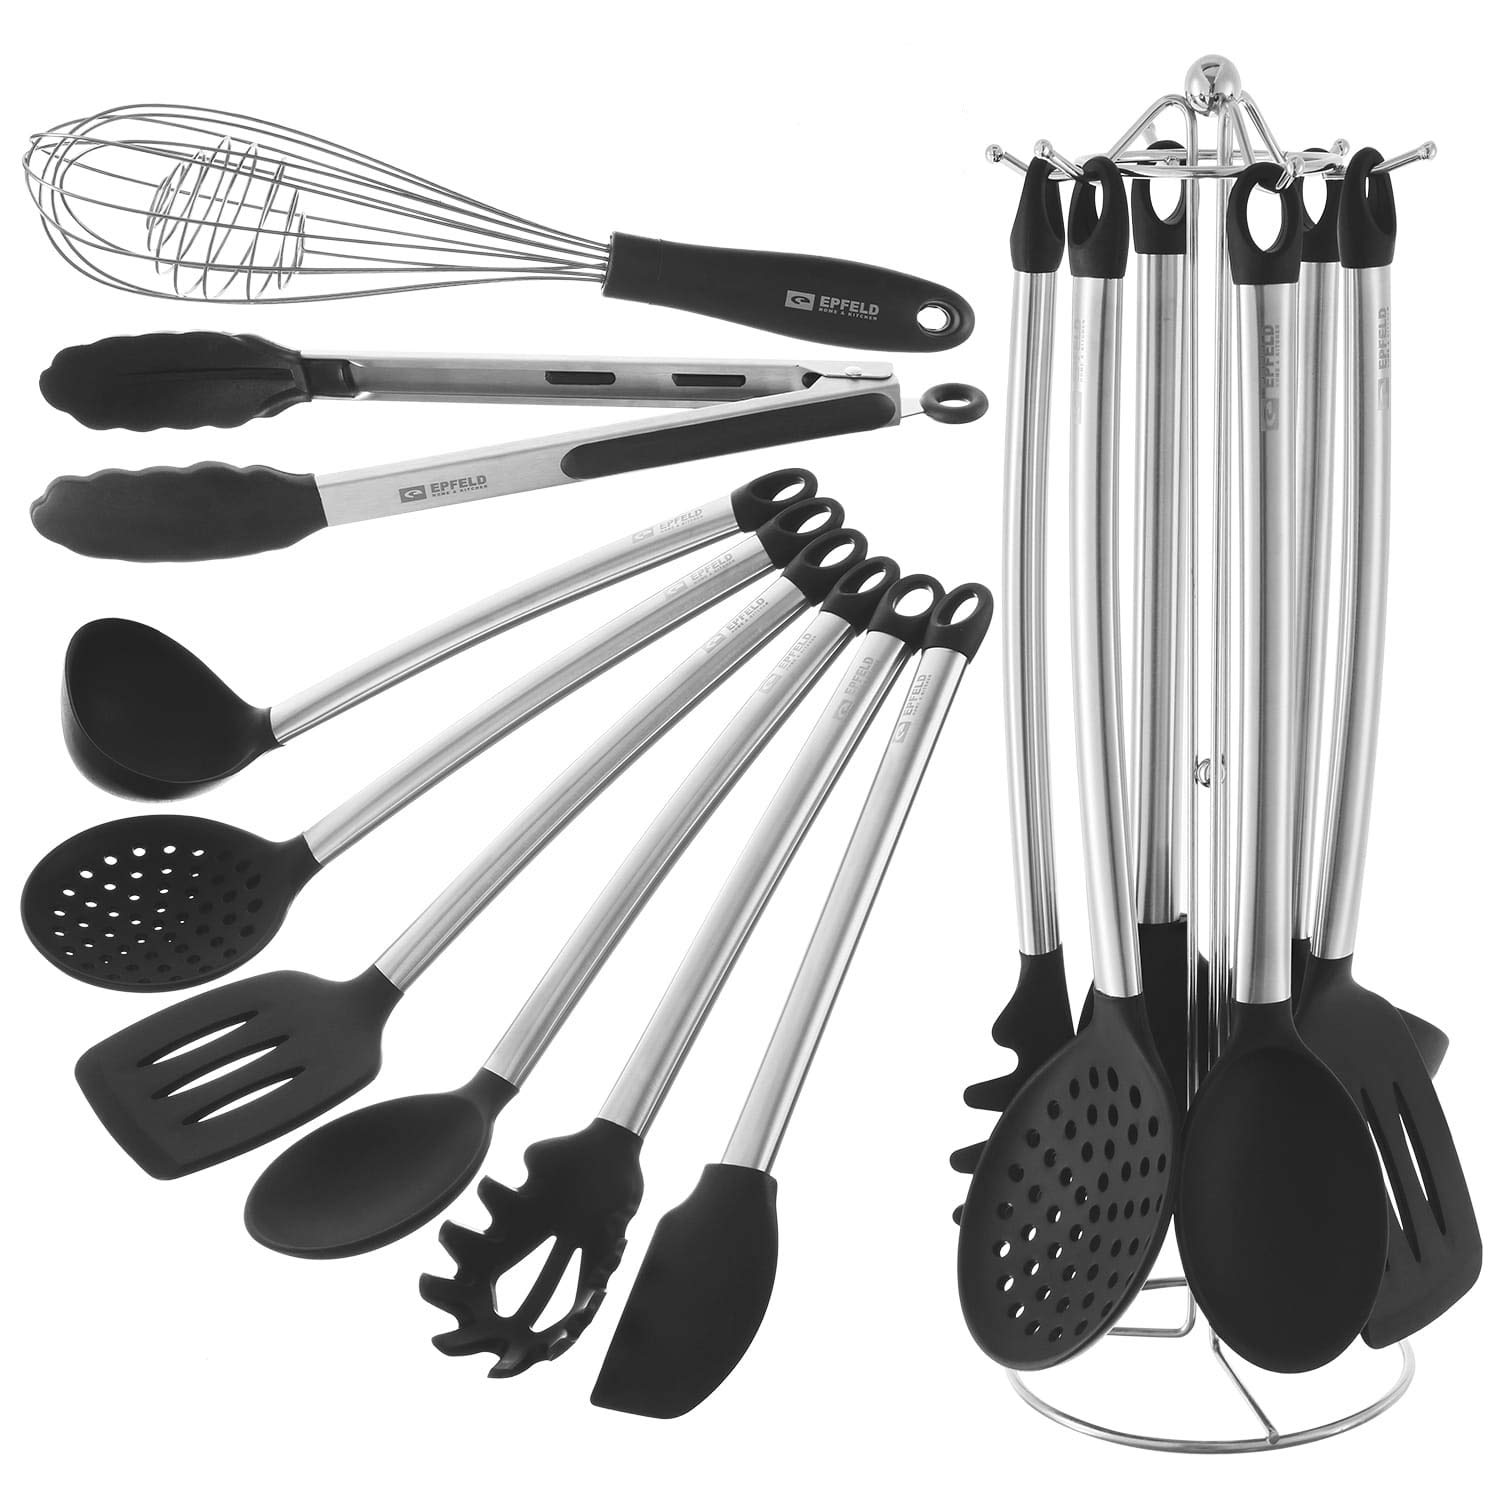 Kitchen Utensil Set With Holder - 8 Piece Silicone, Non-Stick, Cooking Utensils Set With Stainless Steel Stand - Serving Tongs, Spoon, Spatula Tools, Pasta Server, Ladle, Strainer, Whisk, Holder by EPFELD